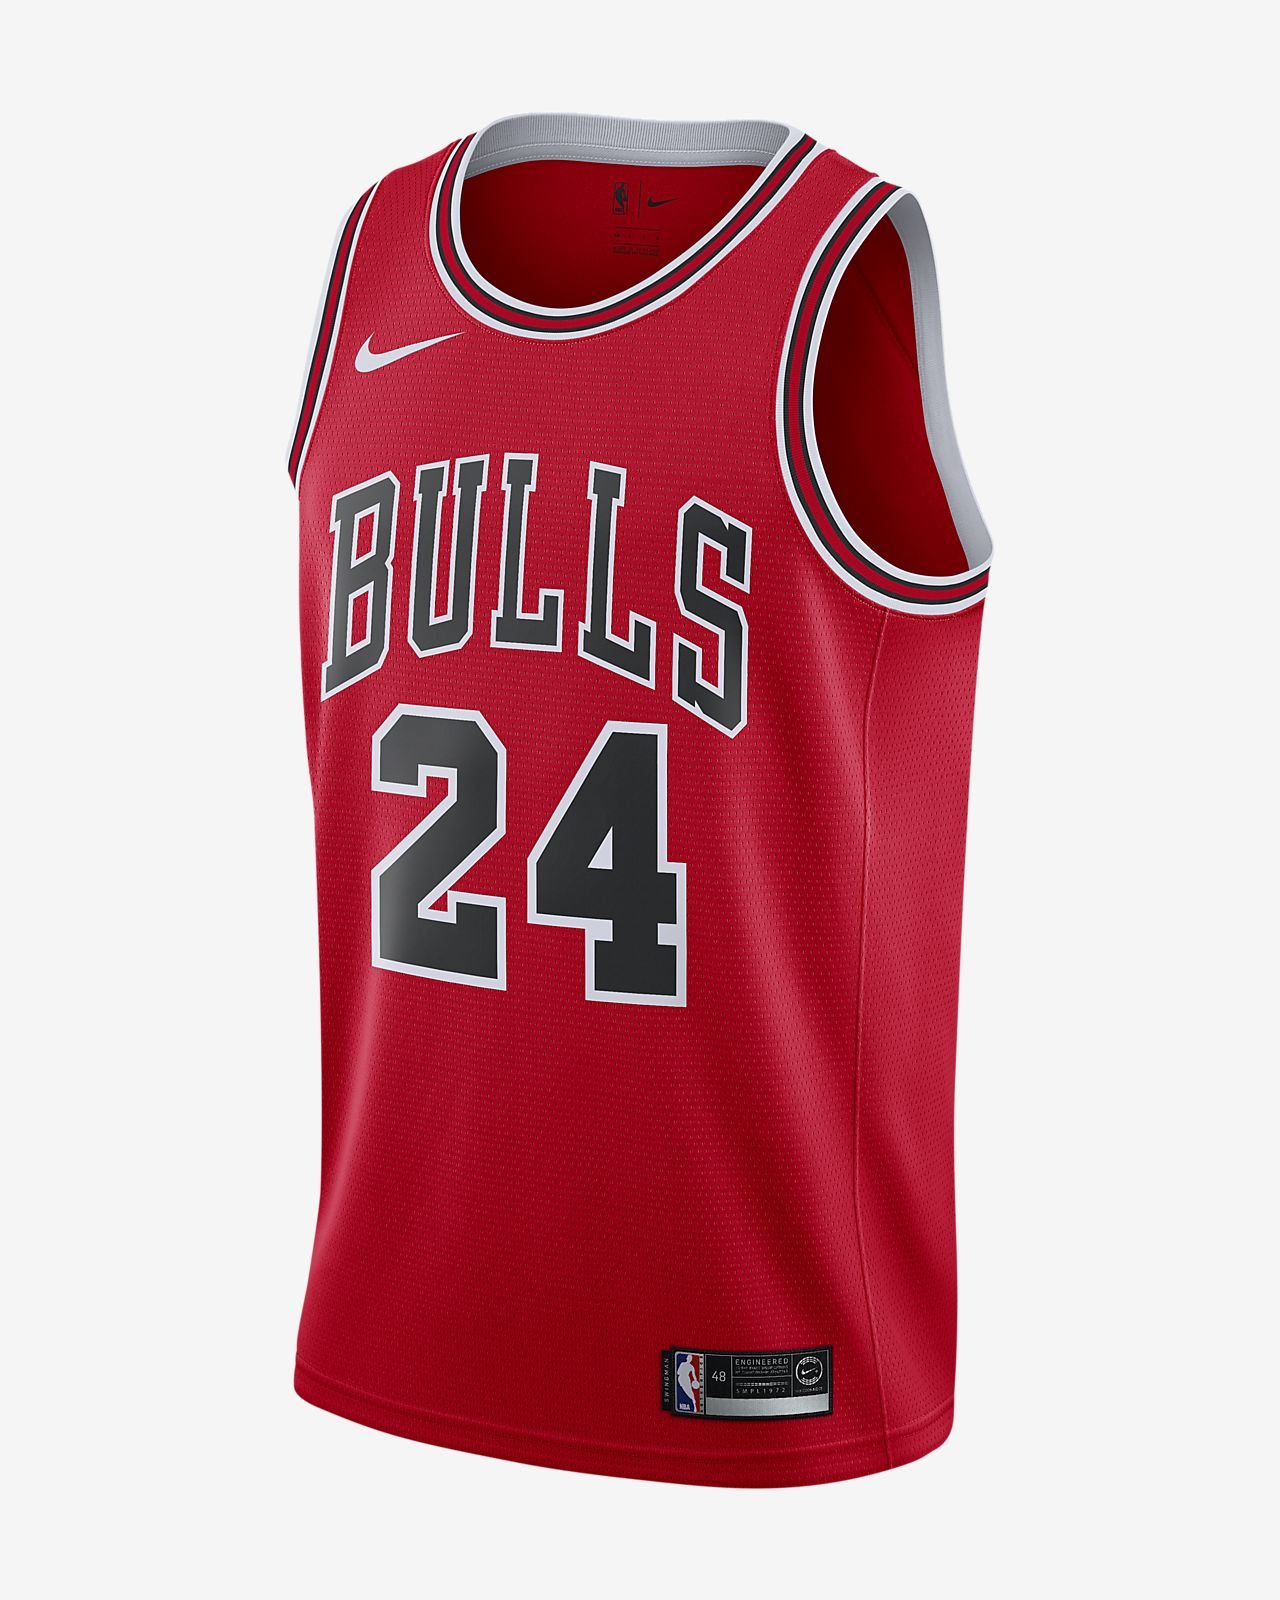 51d2ed8316be3 ... Camiseta conectada Nike NBA para hombre Lauri Markkanen Icon Edition  Swingman (Chicago Bulls)